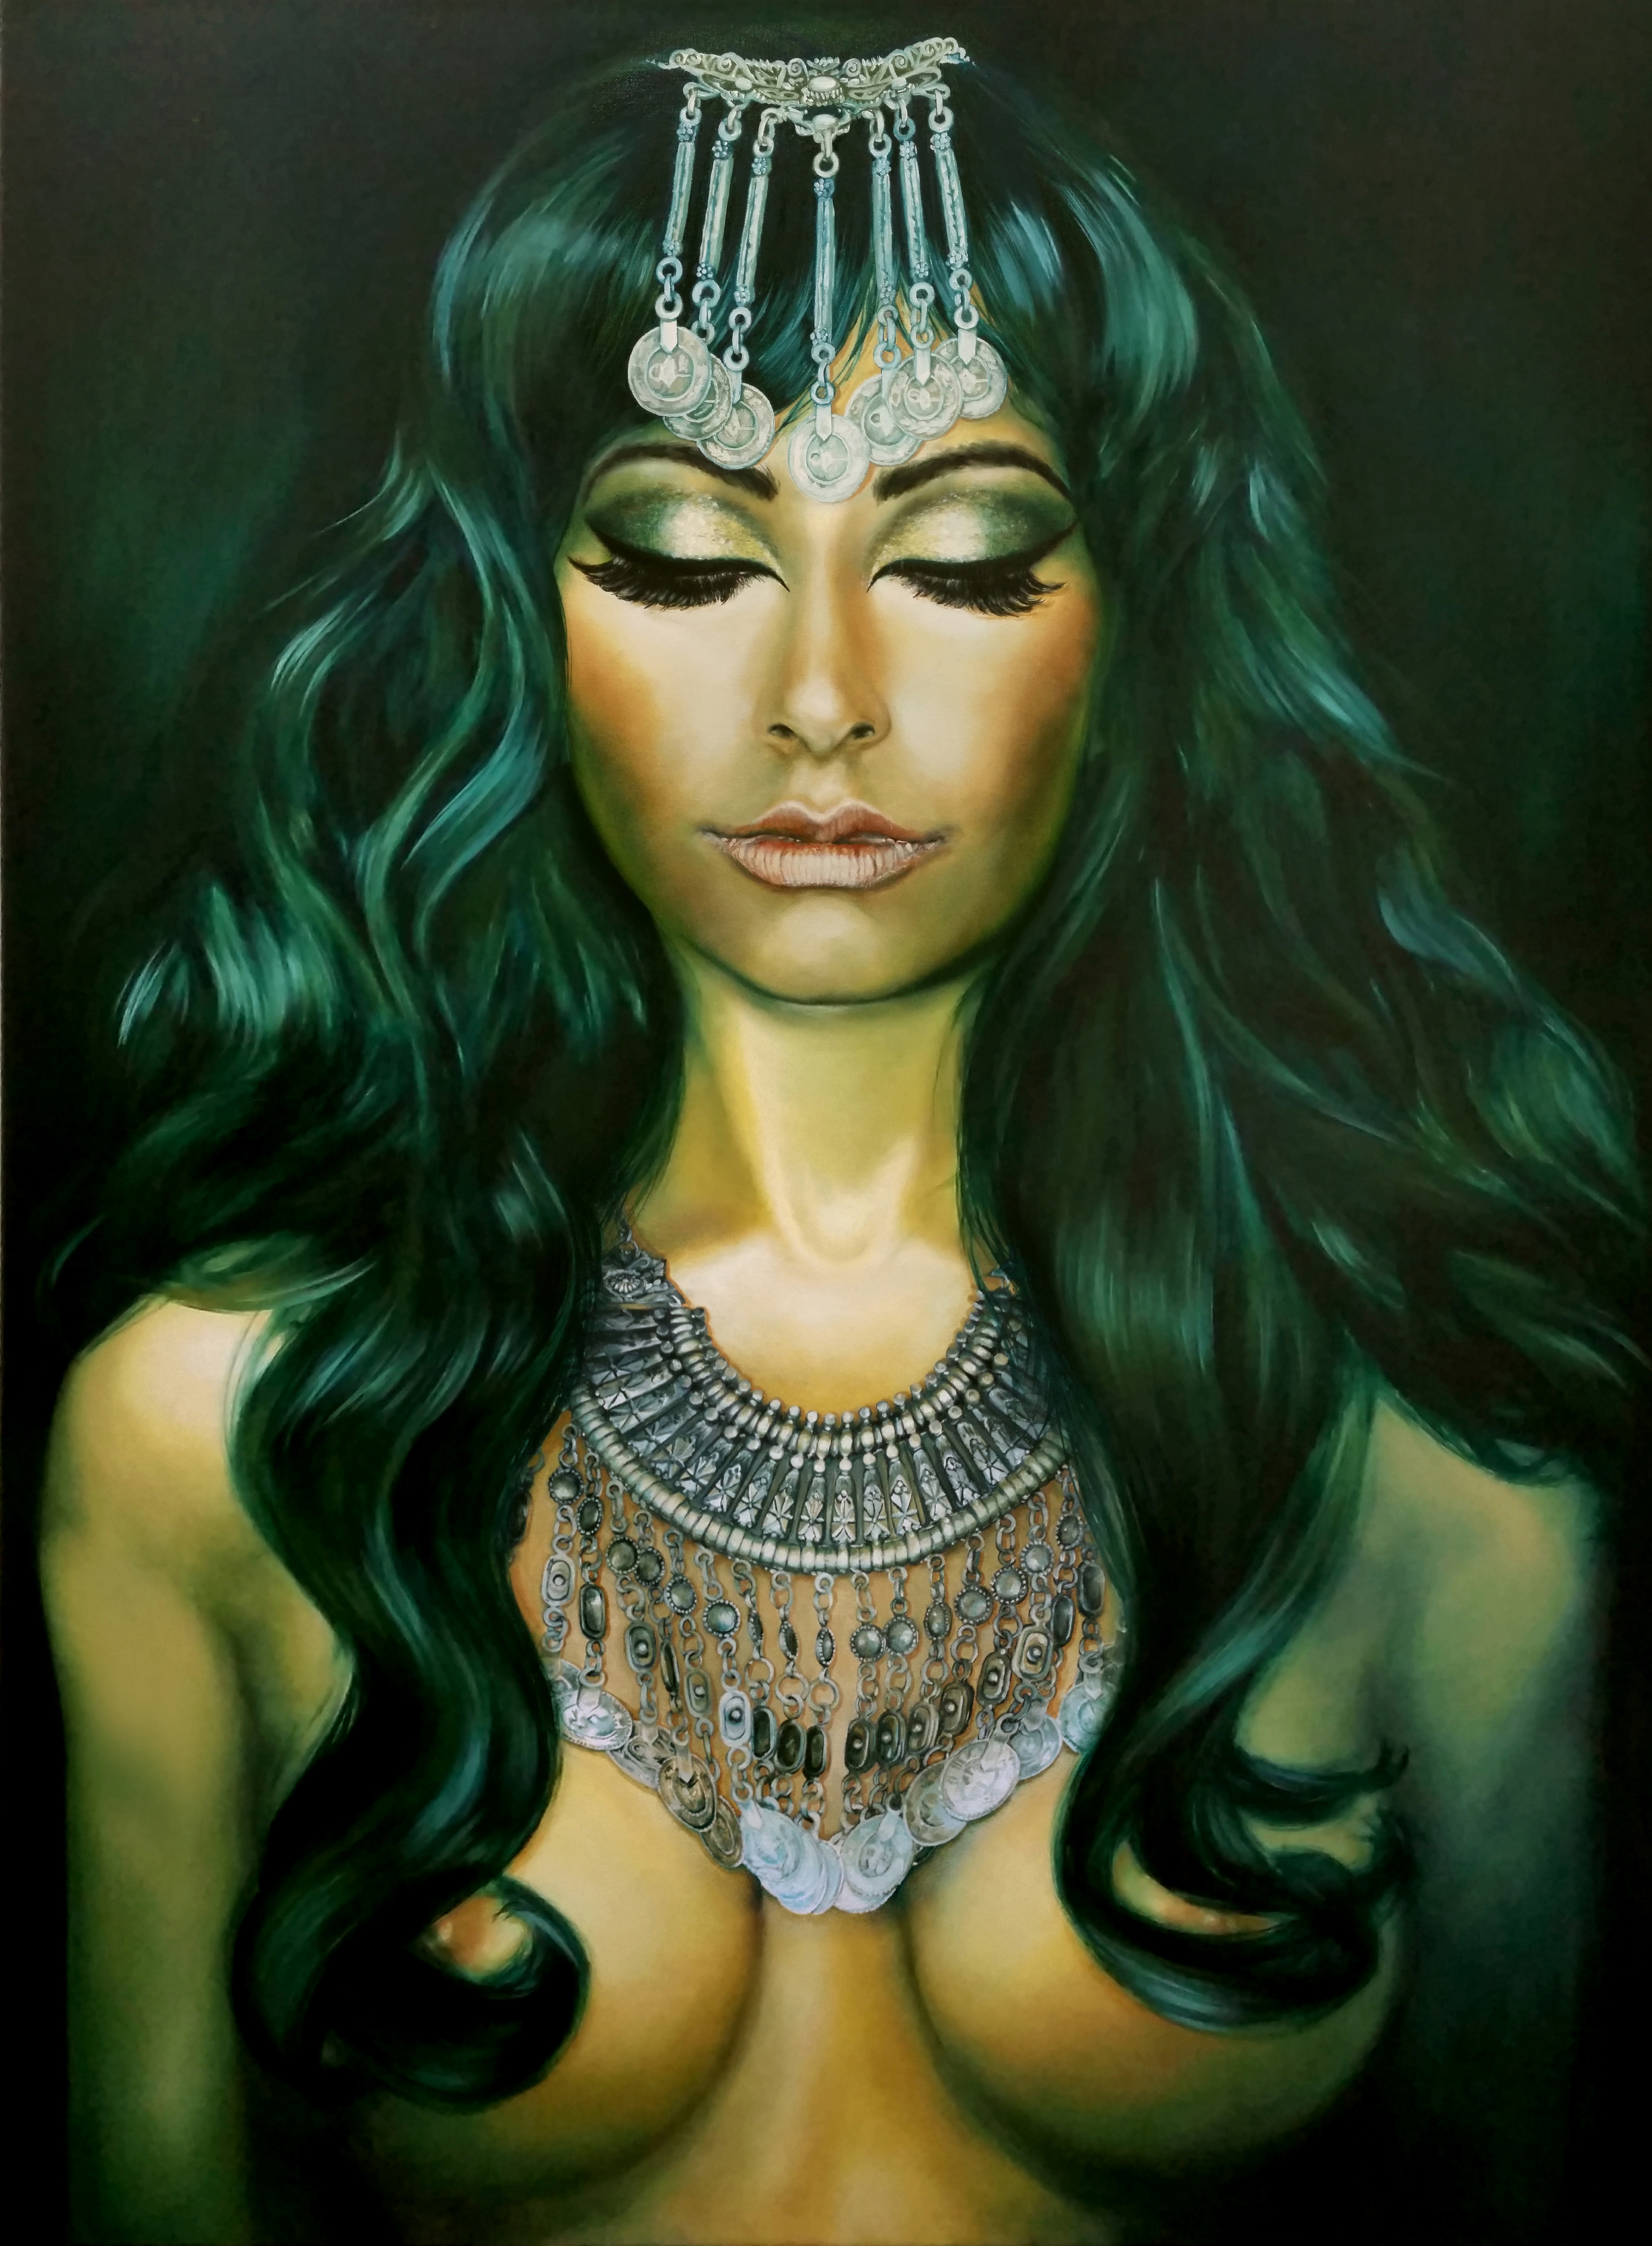 """""""Serenity"""", 2016, Ginger Del Rey  oil on canvas 48"""" x 36"""" x 1.5""""  $6000  This is a portrait of my very dear friend Zeenath- a truly lovely, vibrant woman who perpetually radiates an unquenchable lust for life. Her strong passions remind me of one of my favorite Kerouac quotes:  """"The only people for me are the mad ones, the ones who are mad to live, mad to talk, mad to be saved, desirous of everything at the same time, the ones who never yawn or say a commonplace thing, but burn, burn, burn like fabulous yellow roman candles exploding like spiders across the stars."""" This is Zee to a tee. But such a strong, fiery soul usually finds the one thing she's lacking is a feeling she's arrived, she can relax, she can enjoy the moment. So I chose to paint her in a rare moment of perfect peace and serenity."""